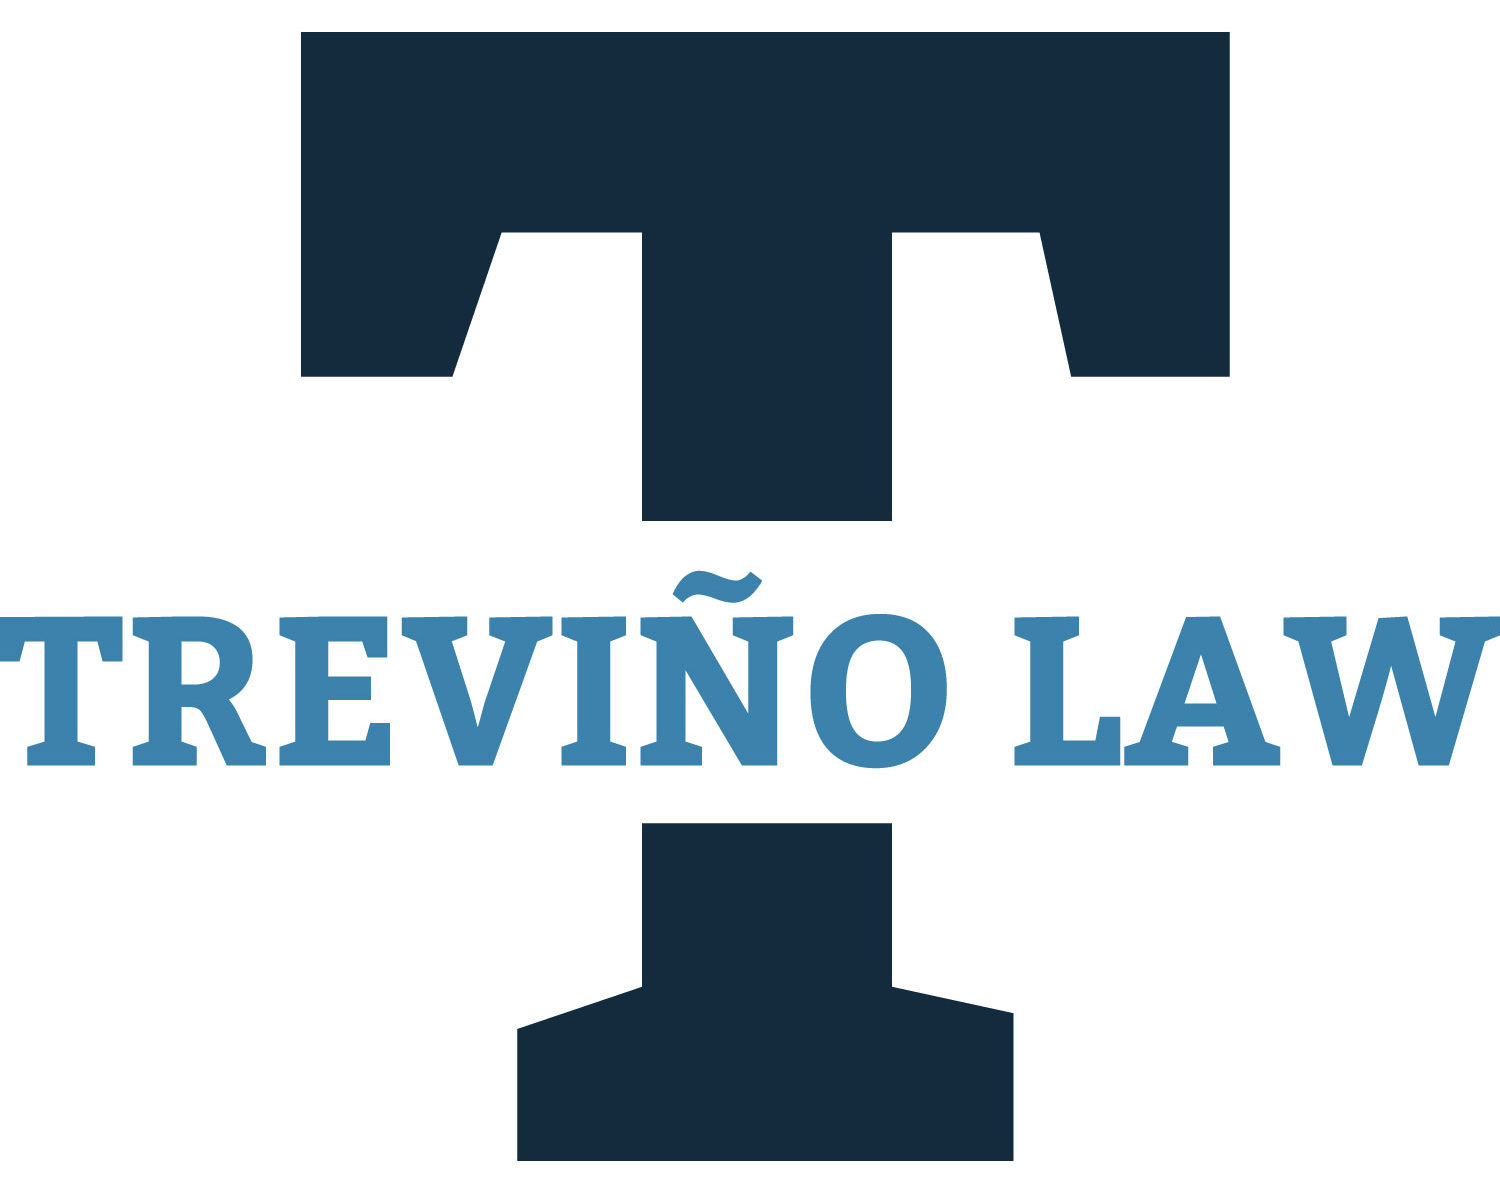 Trevino Law, PLLC